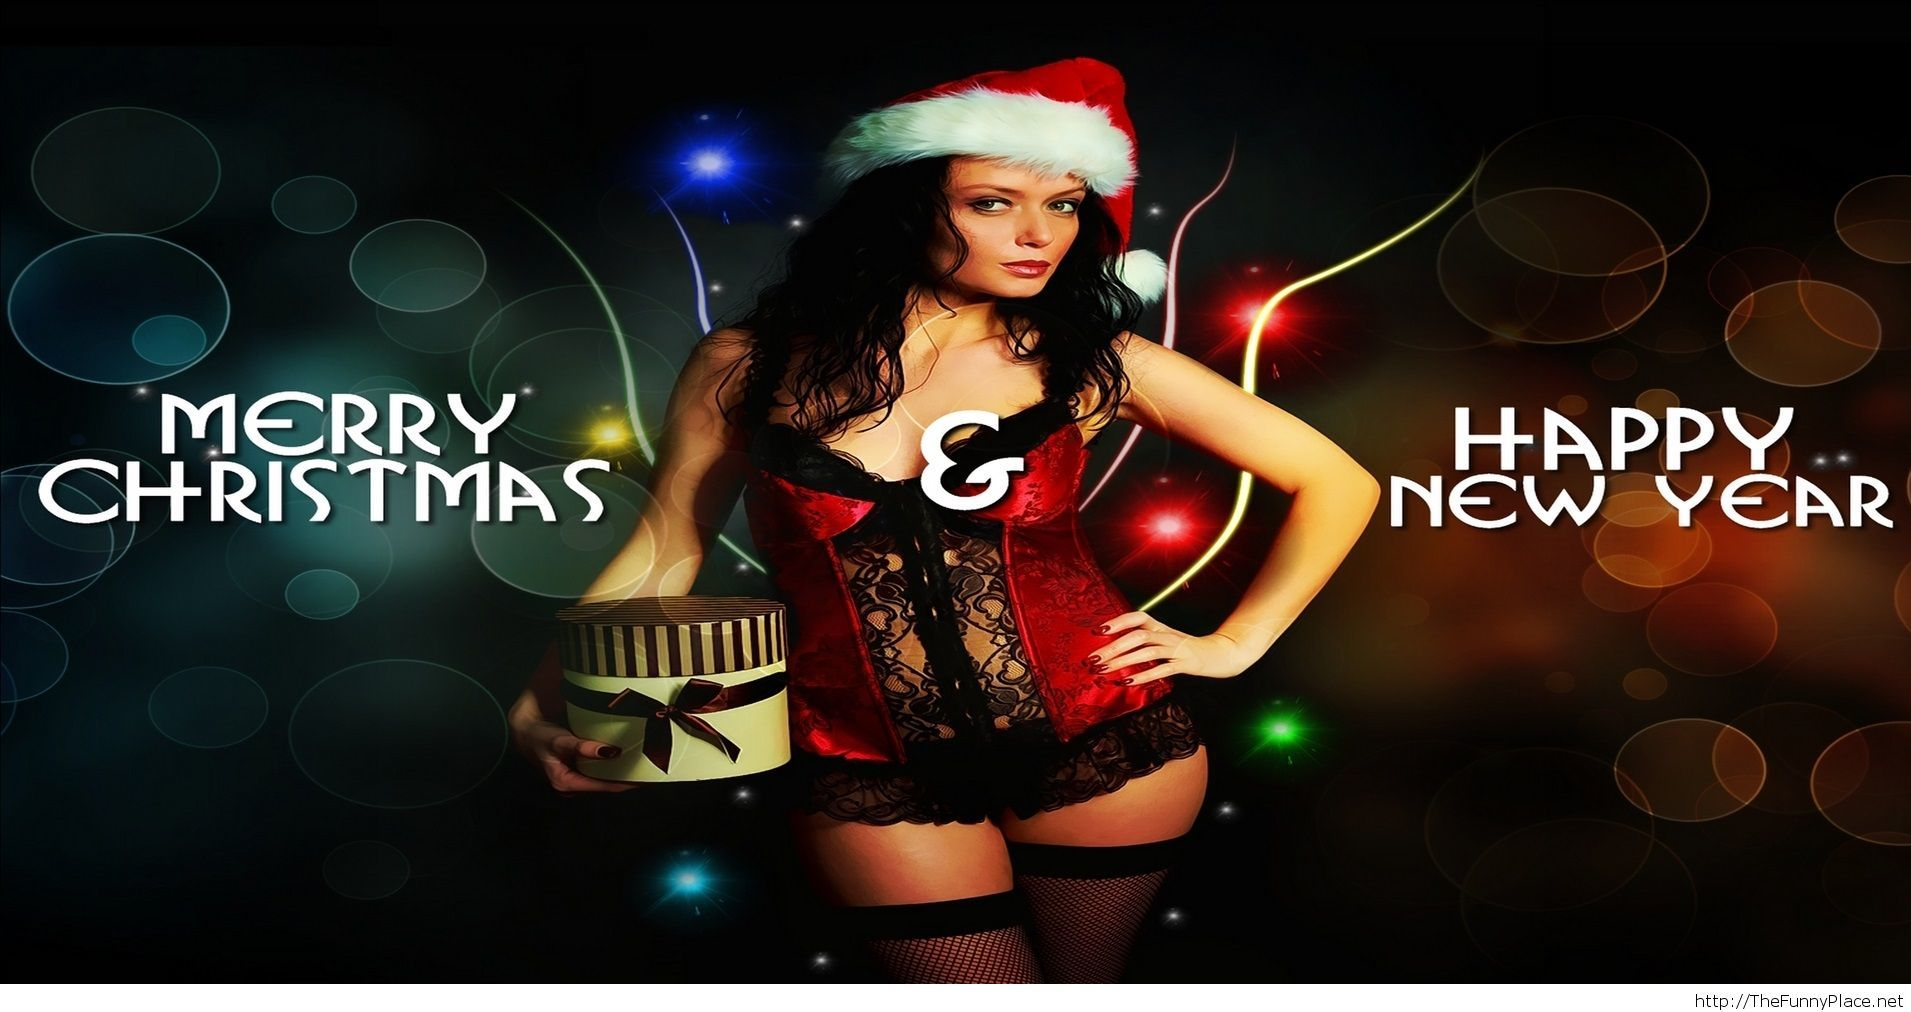 Merry Christmas and Happy new year sexy wallpaper ...